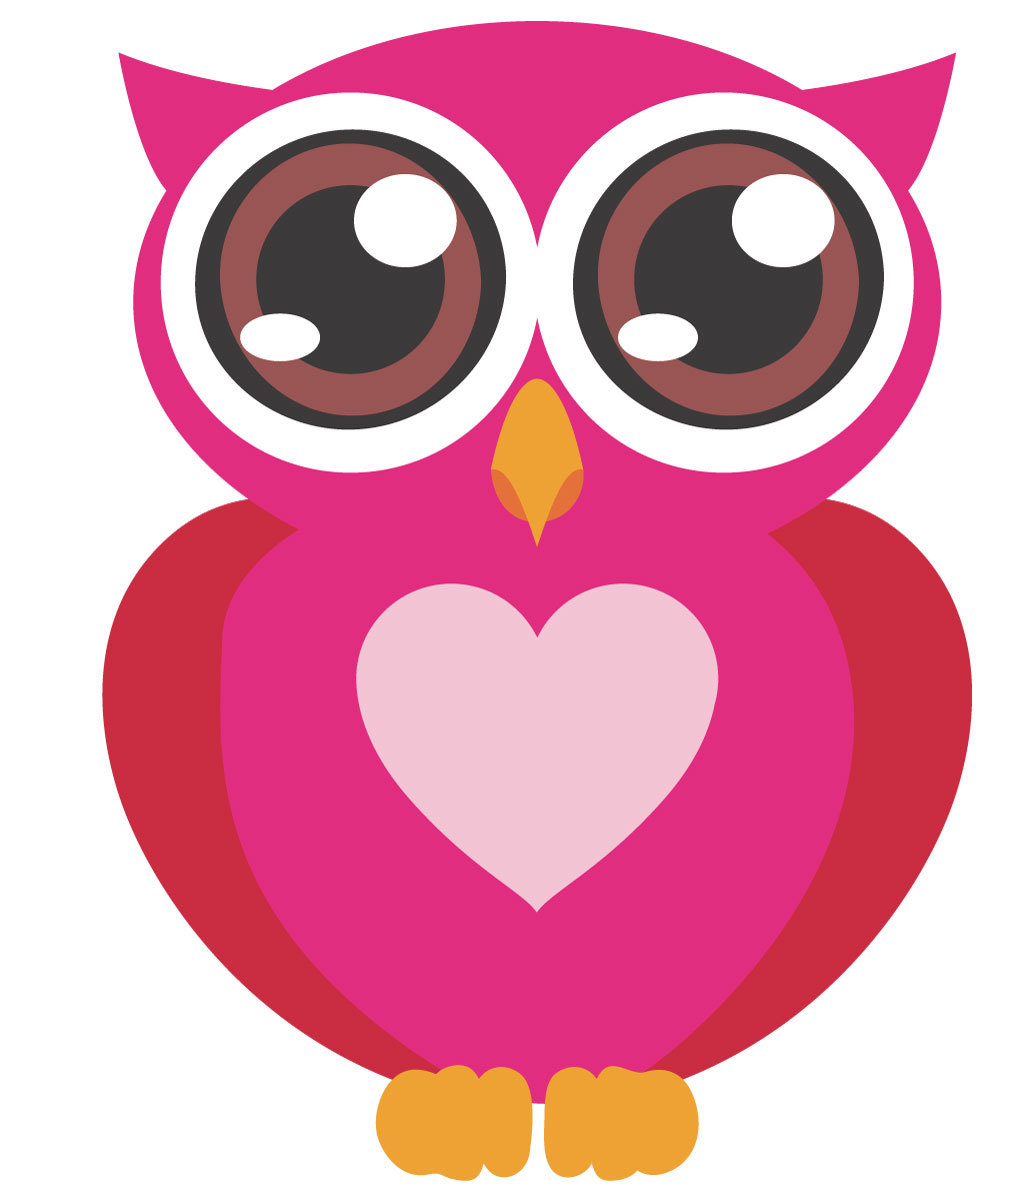 Small Owl Clipart - Clipart Kid